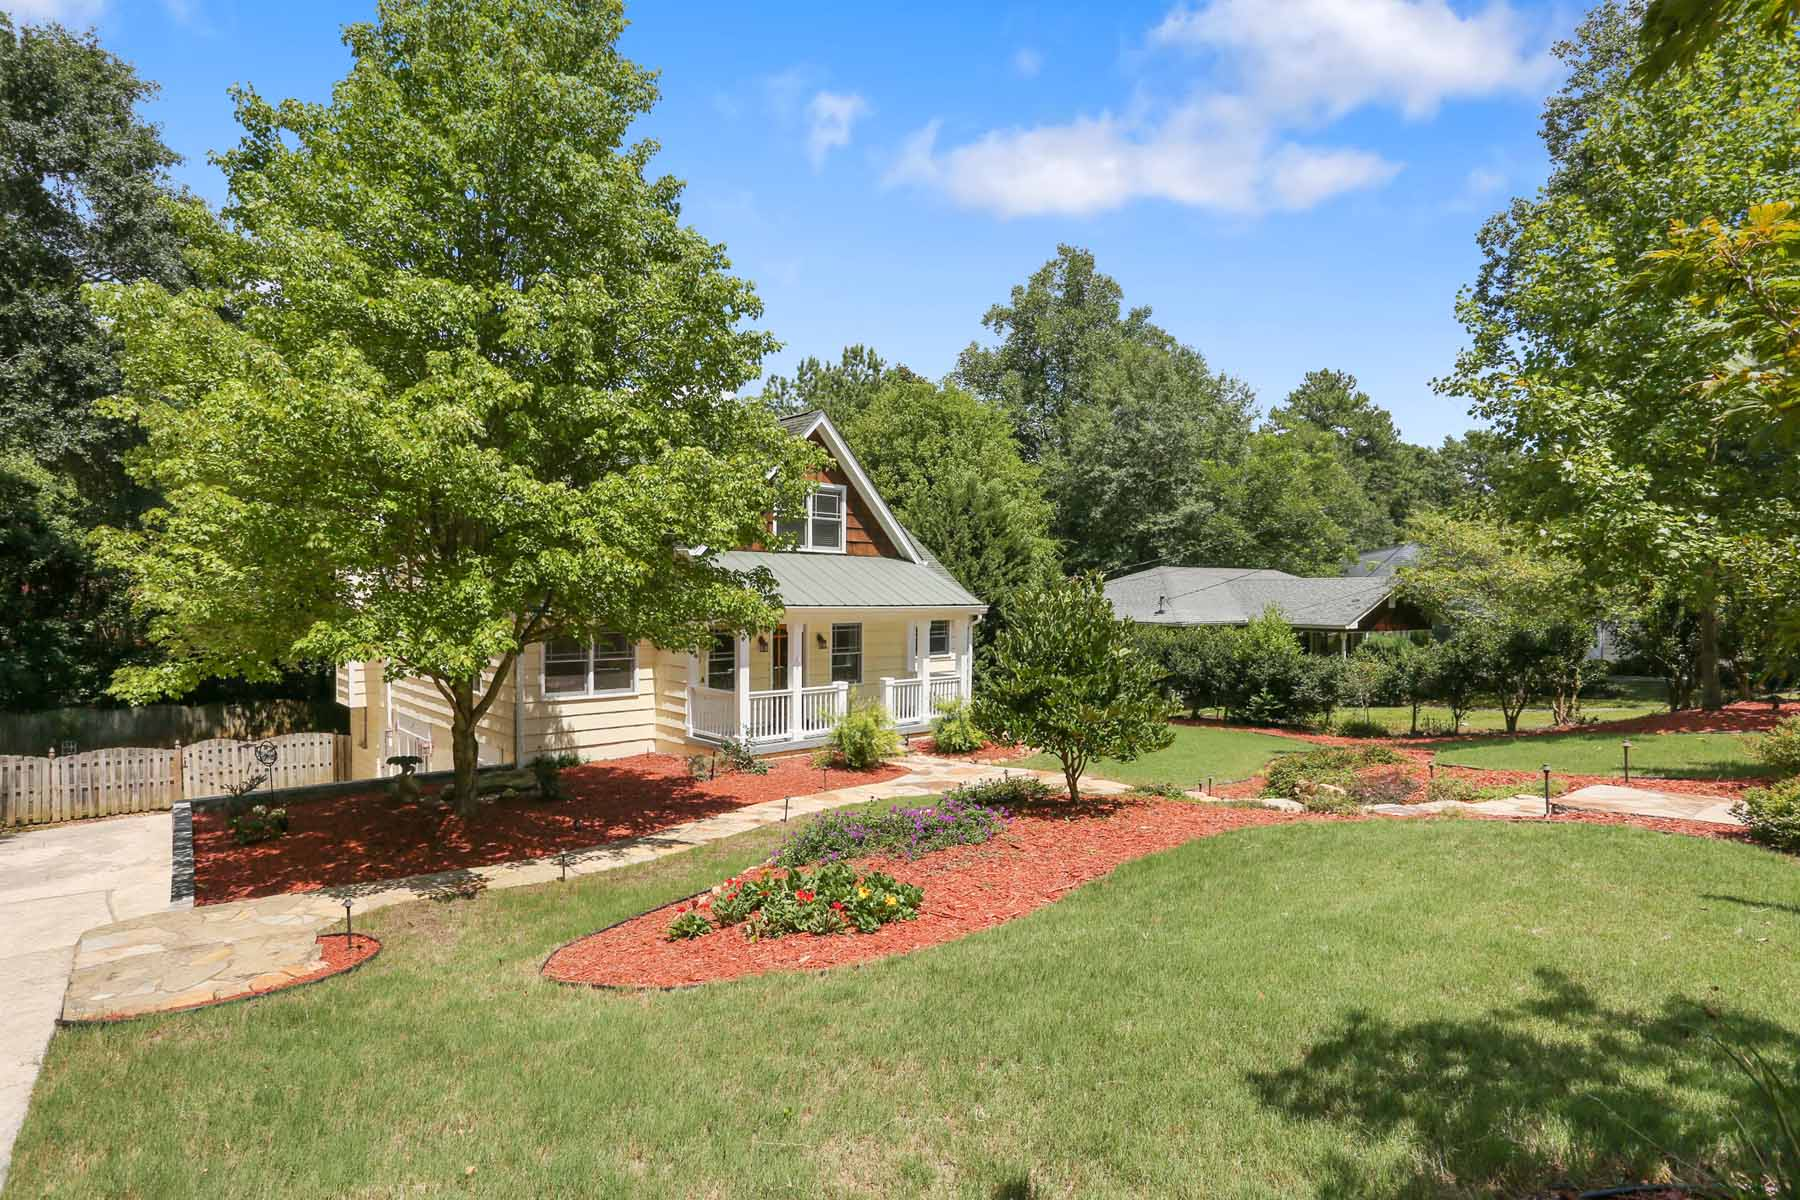 Single Family Home for Sale at Large Garden Hills Cape Cod surrounded by park like grounds. 411 Springdale Drive NE Garden Hills, Atlanta, Georgia 30305 United States